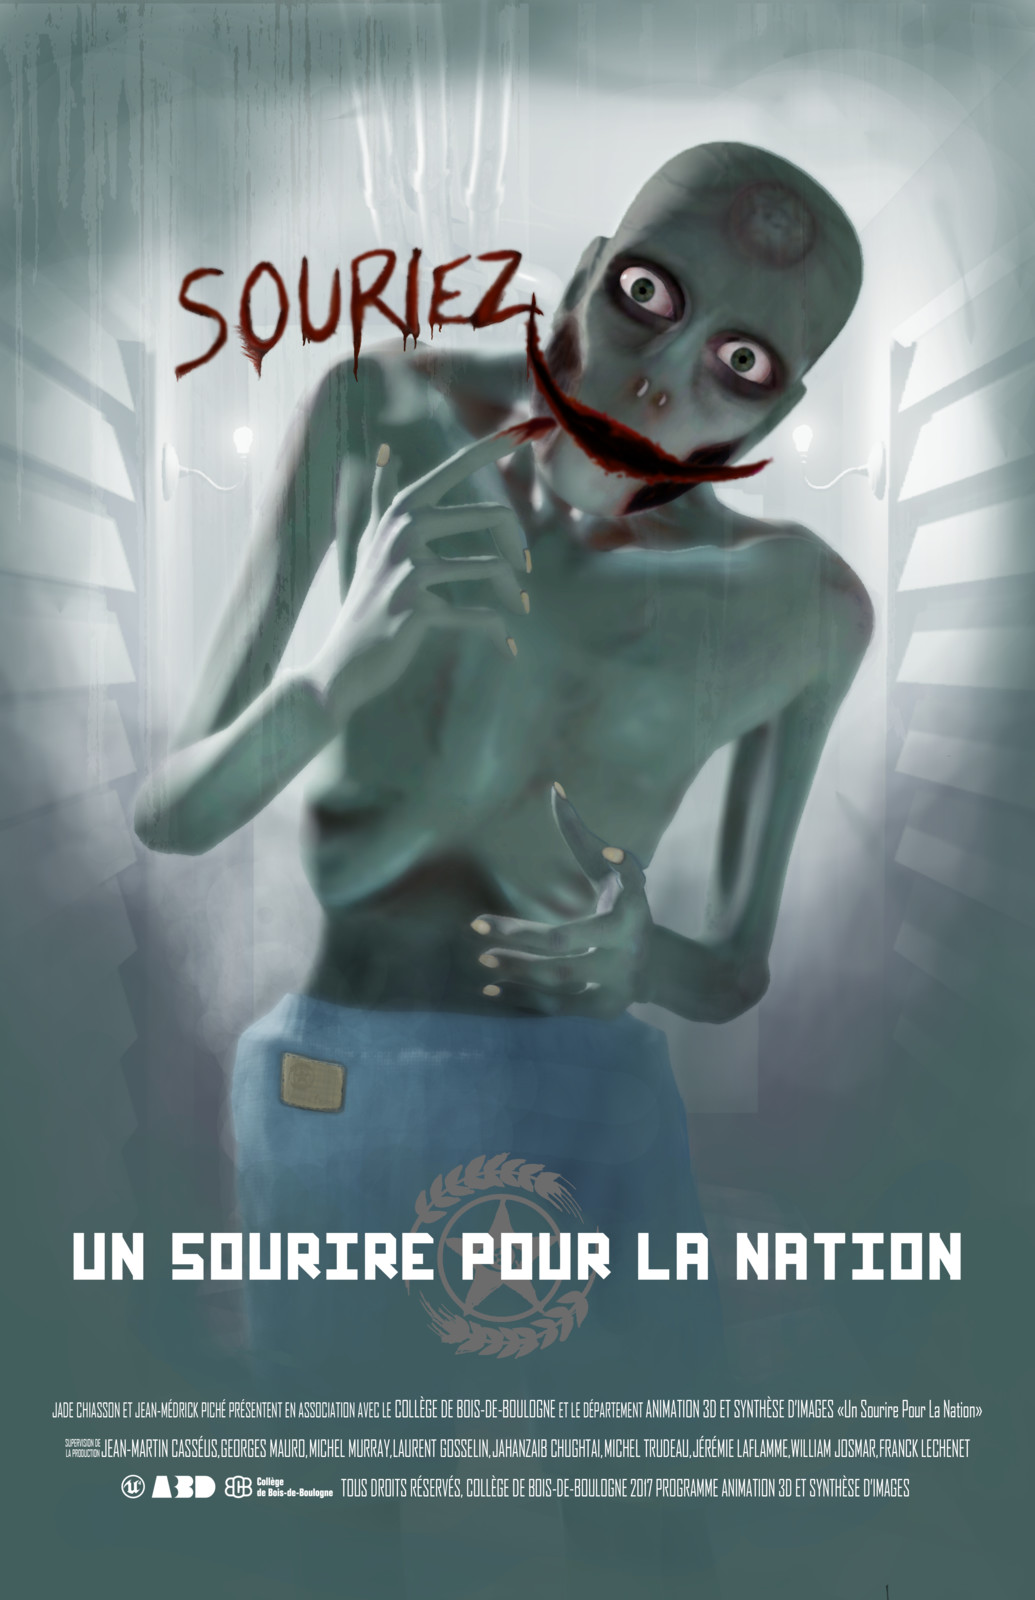 """Poster for the short film called """"Un sourire pour la Nation"""". Based on the movie poster for The Dark Knight."""